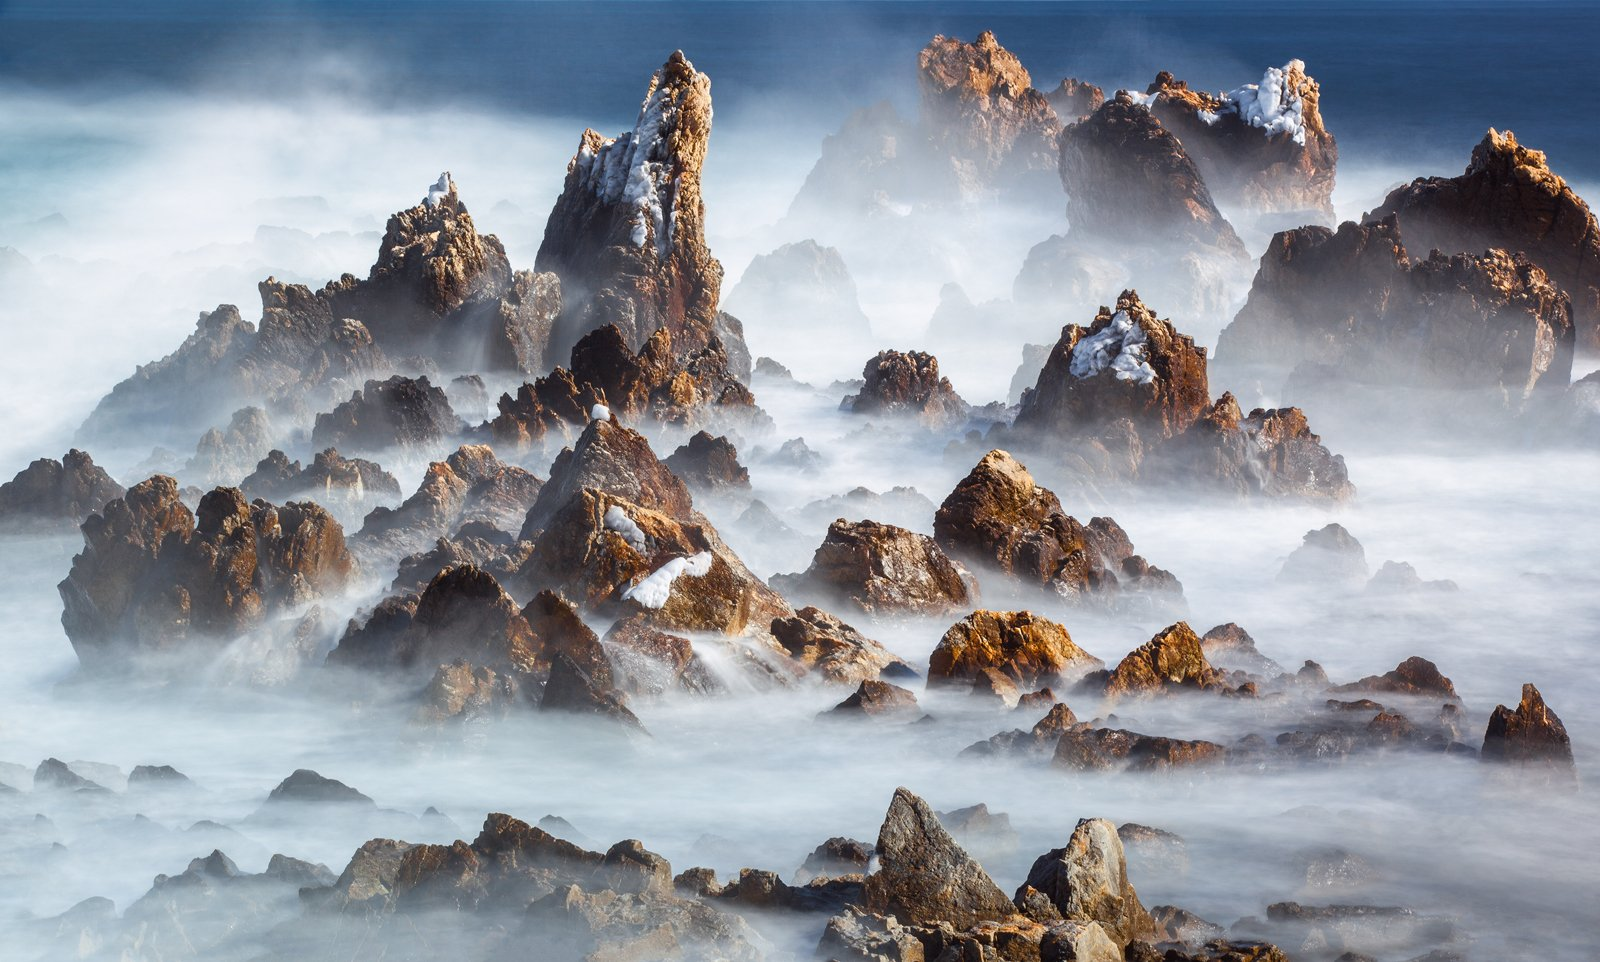 seashore, mountains, rugged, waves, rocks, foggy, clouds, 류재윤